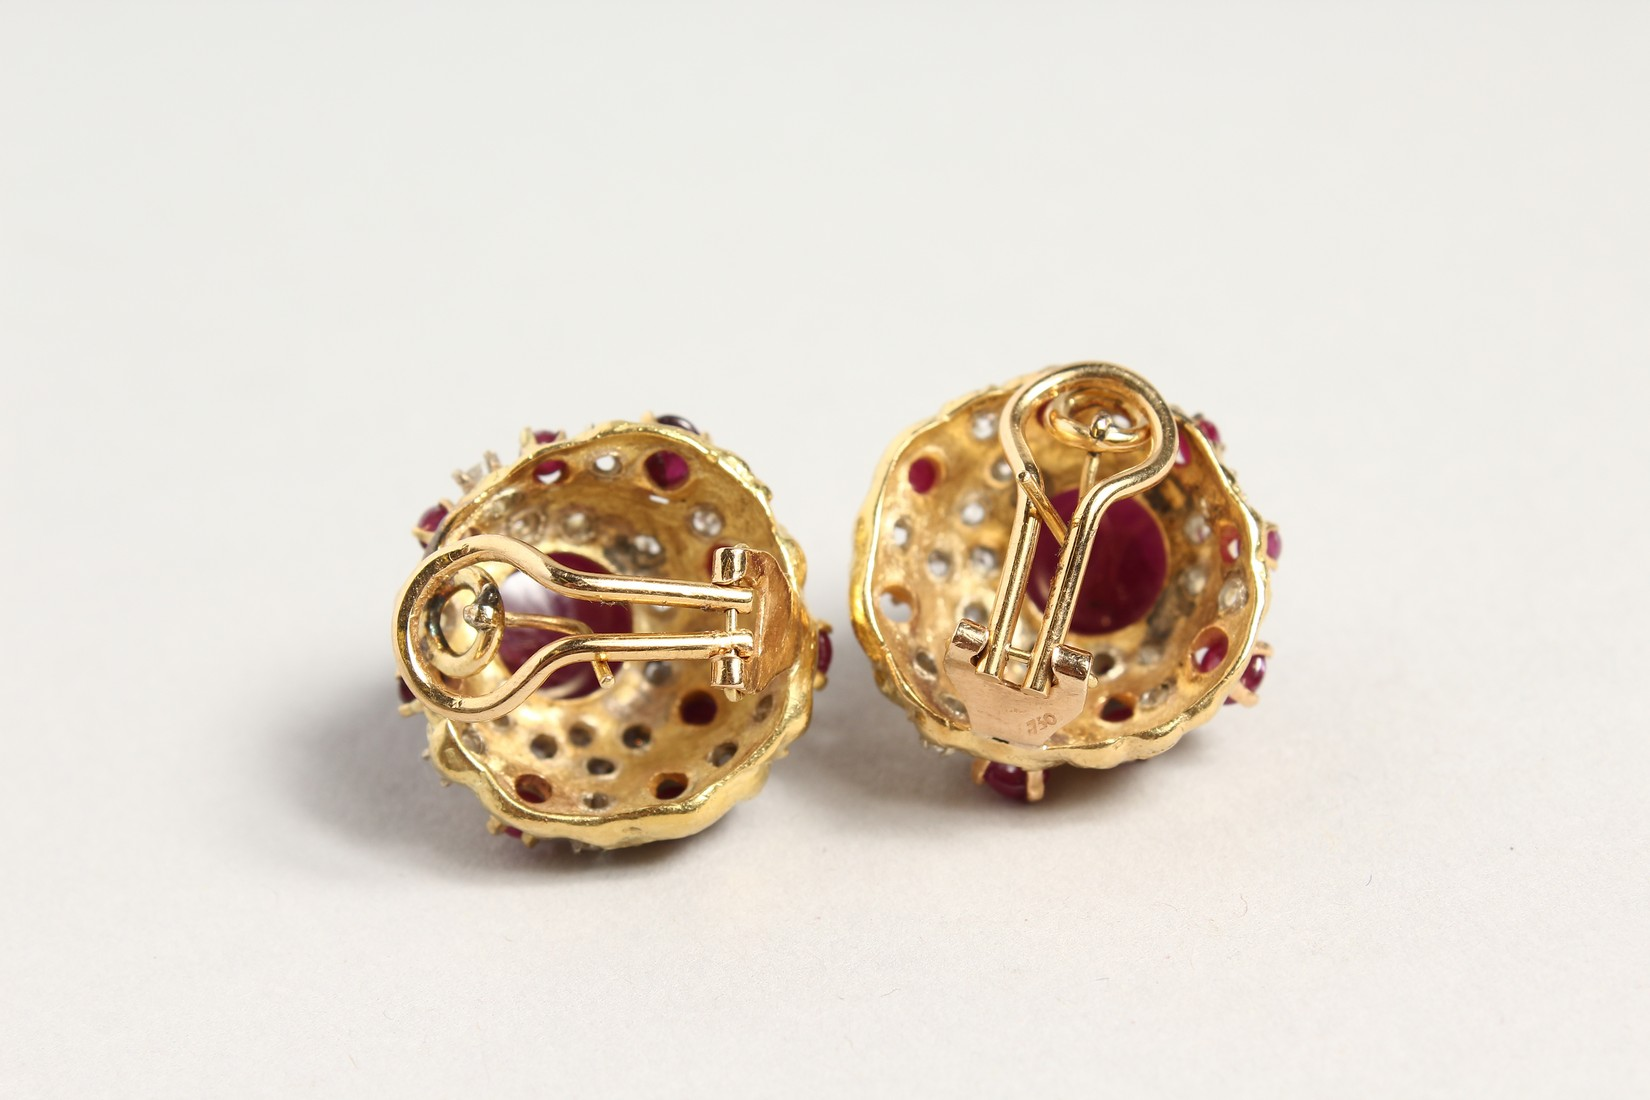 A SUPERB PAIR OF 18CT GOLD CARBOUCHON RUBY AND DIAMOND CLIP EARRINGS. - Image 4 of 4